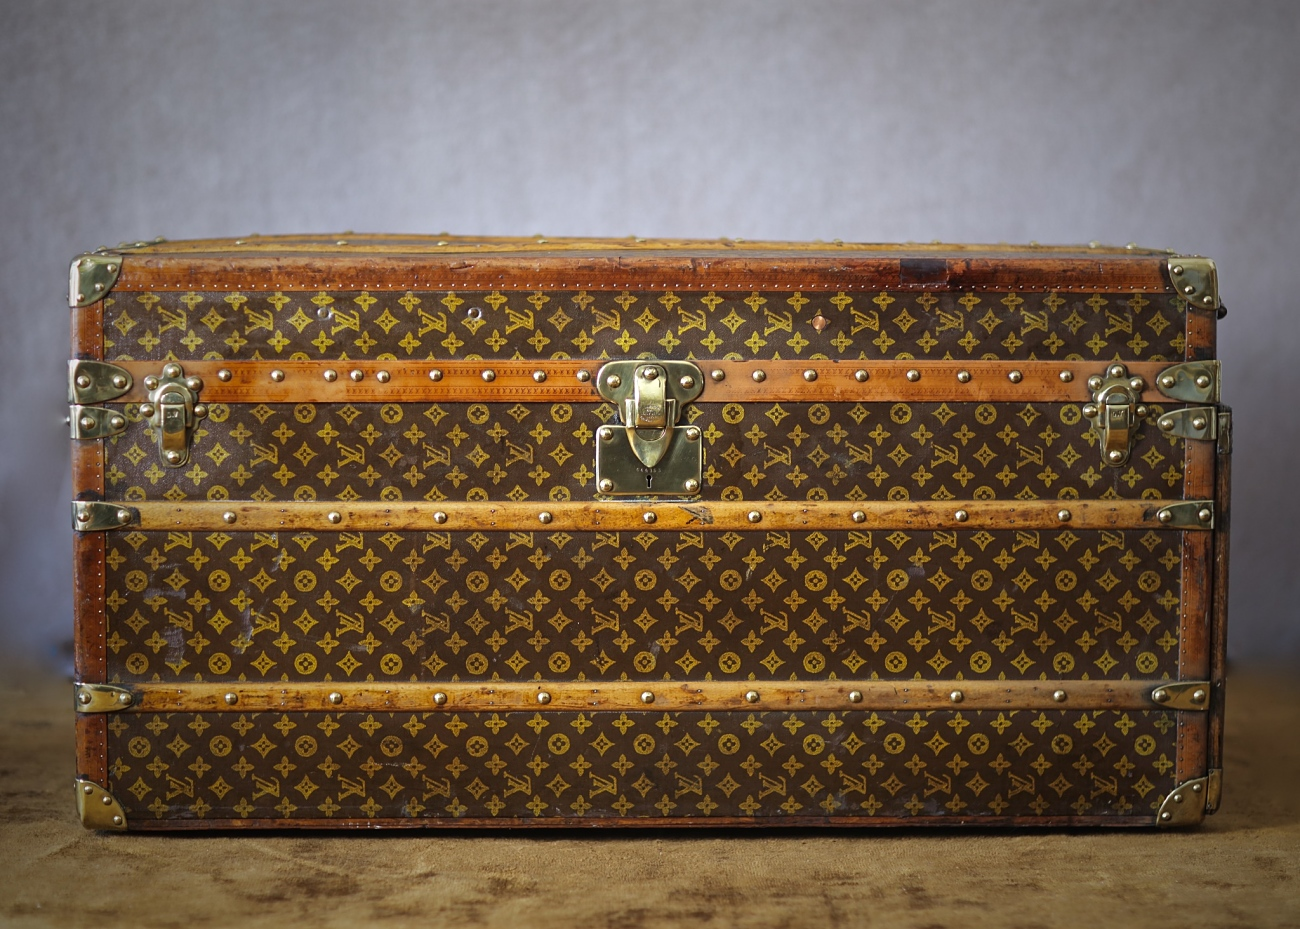 the-well-traveled-trunk-louis-vuitton-thumbnail-product-5660-1